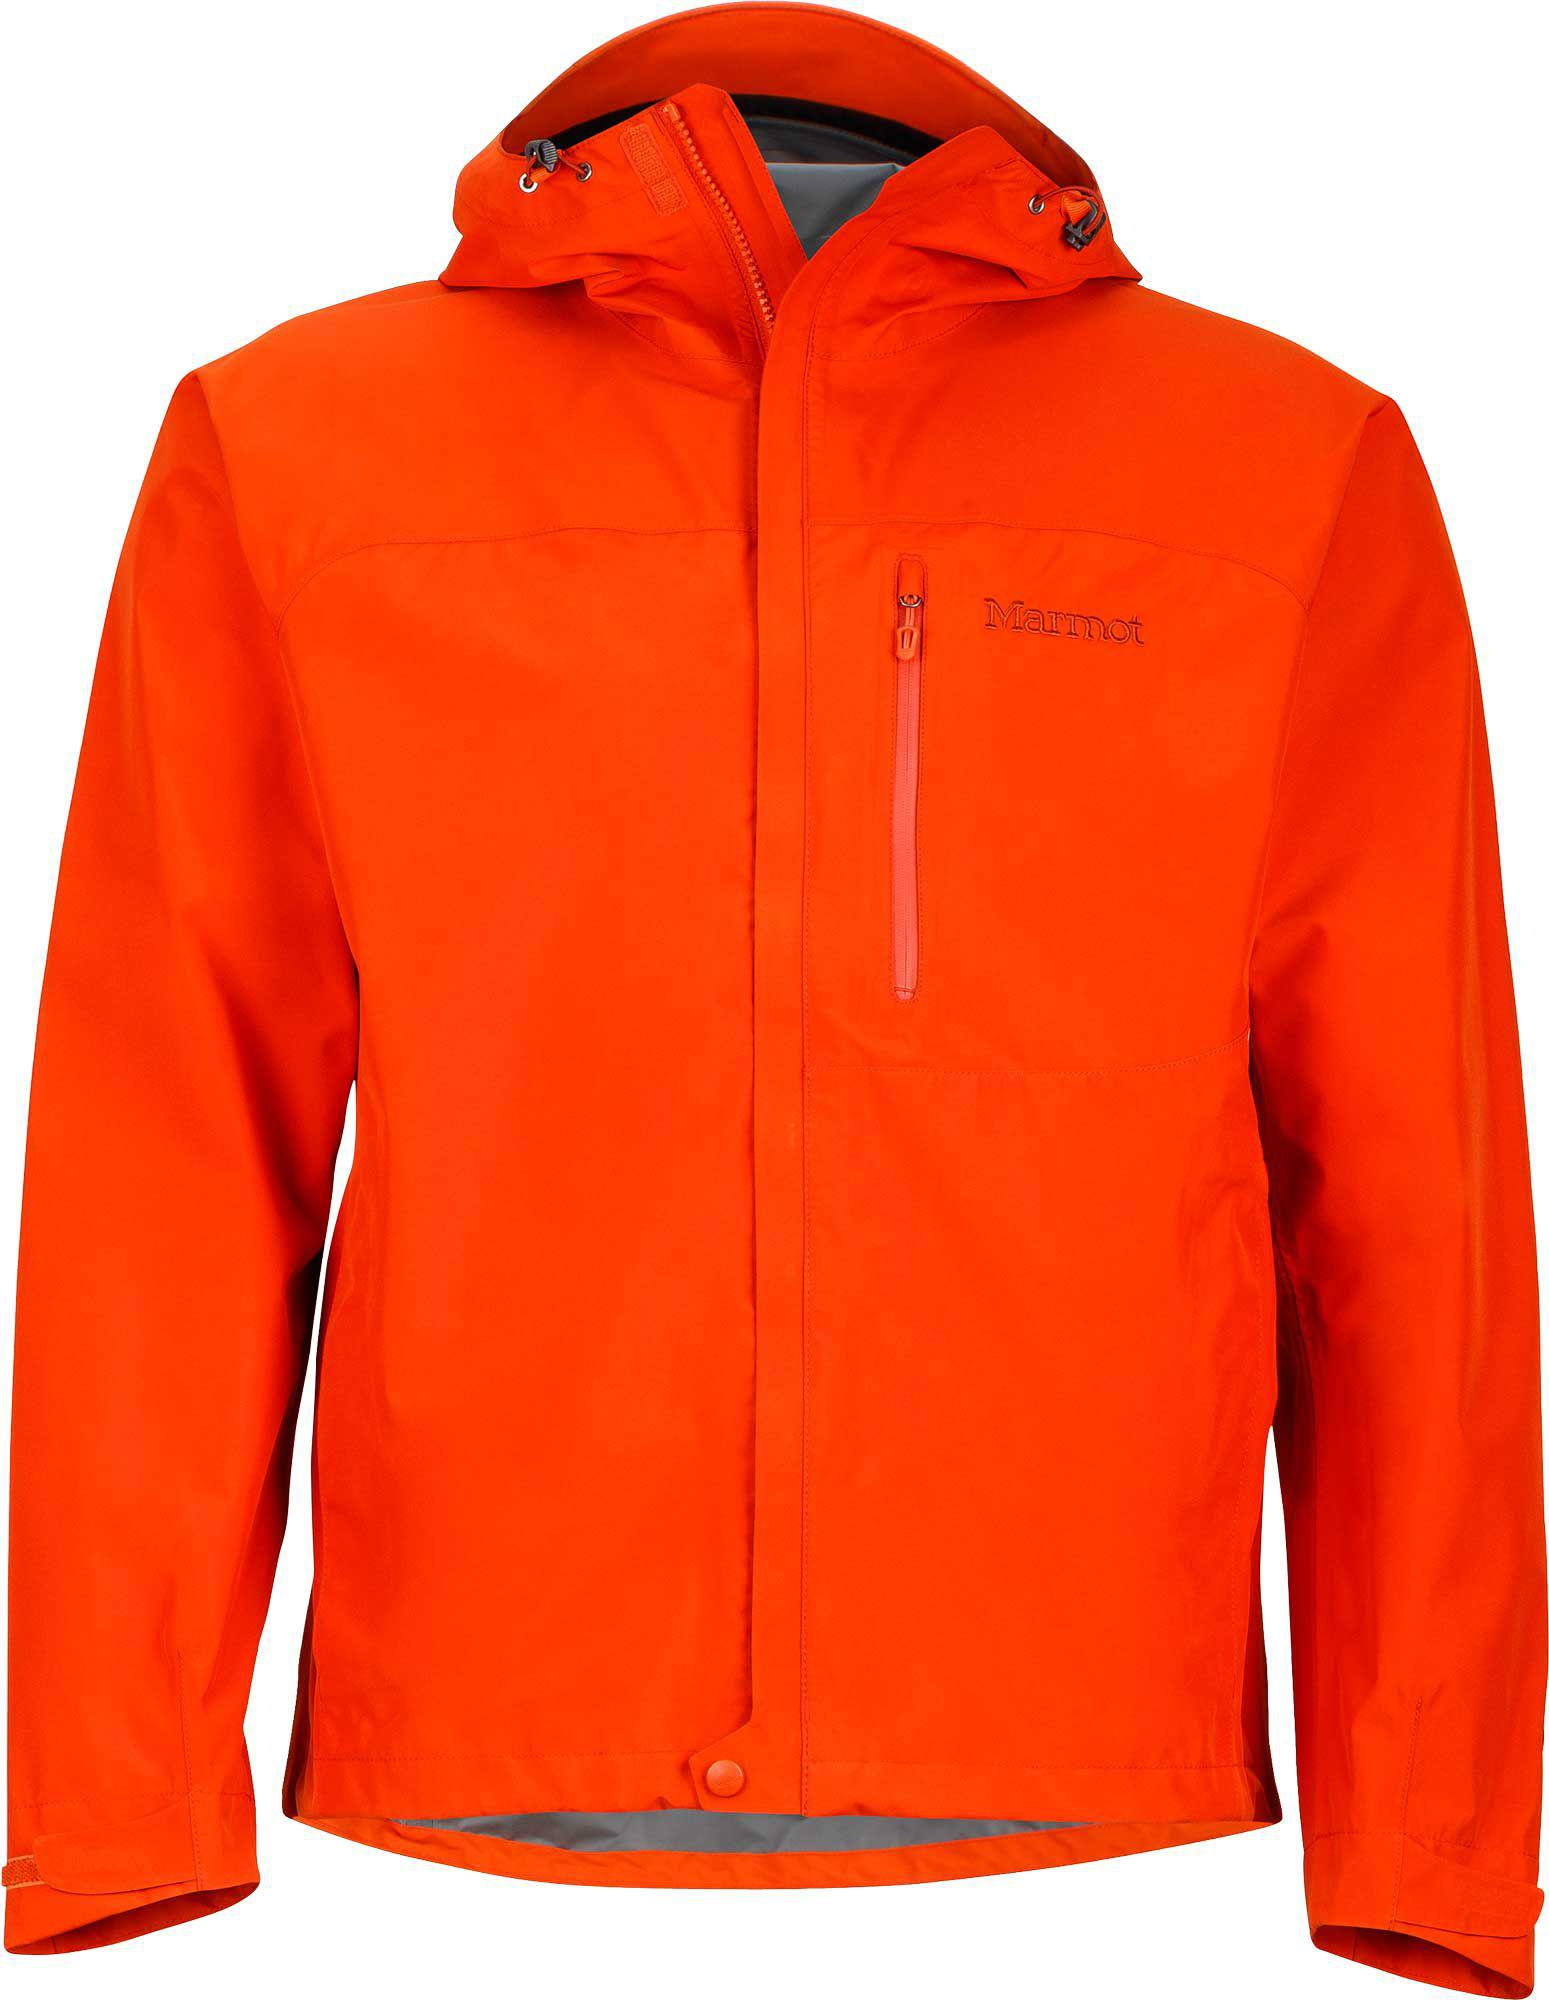 c2082f6f0dd9 Lyst - Marmot Minimalist Rain Jacket in Orange for Men